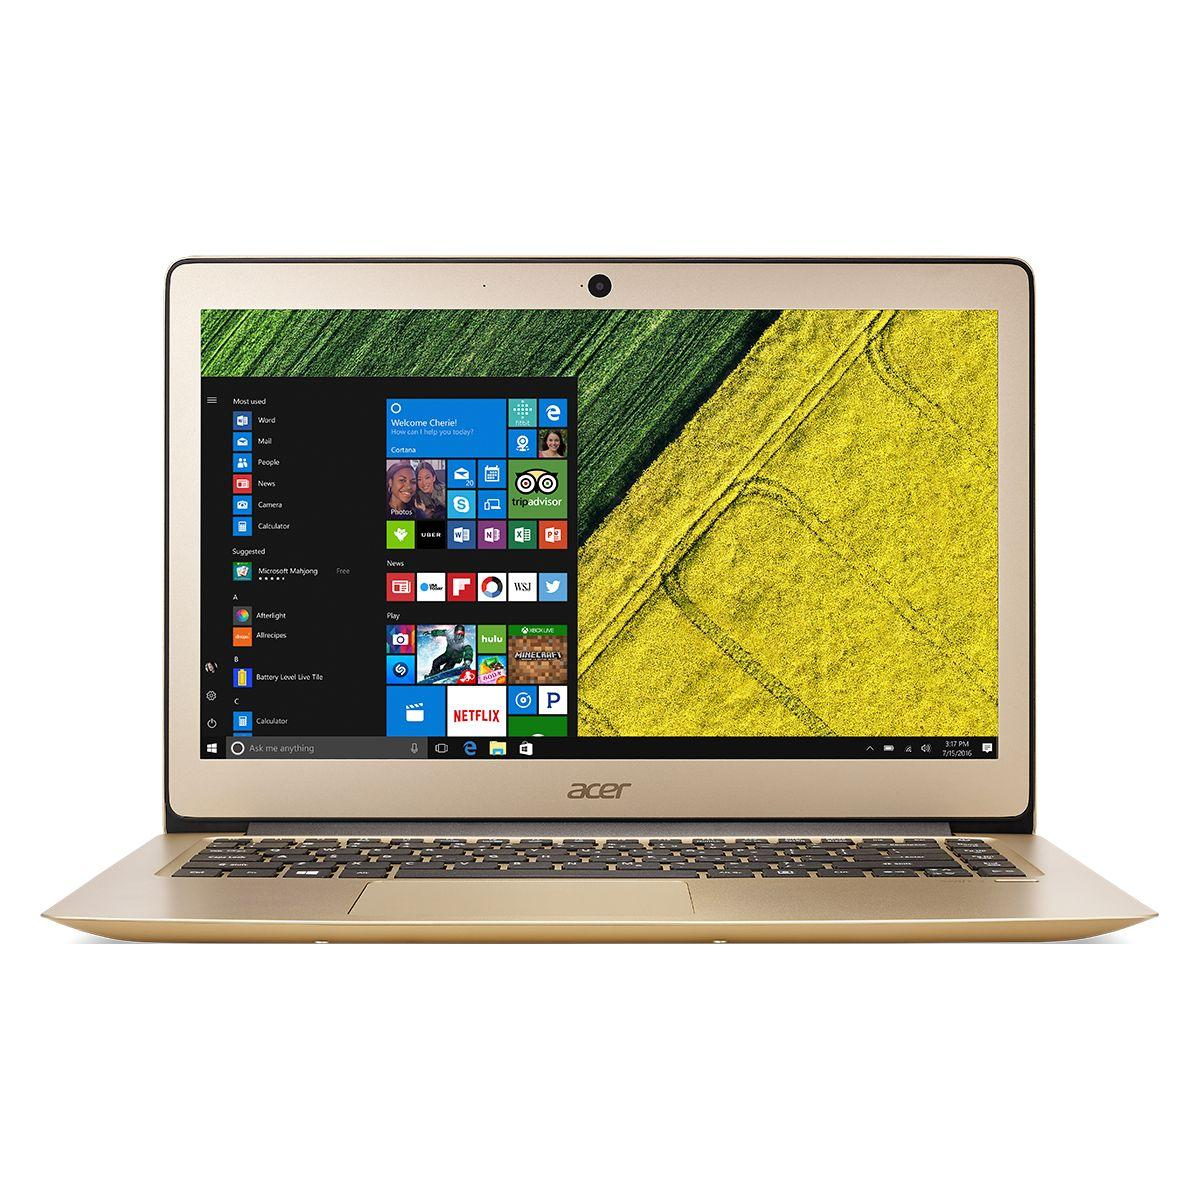 Portable acer swift sf314-51-35nw - 5% de remise : code multi5 (photo)